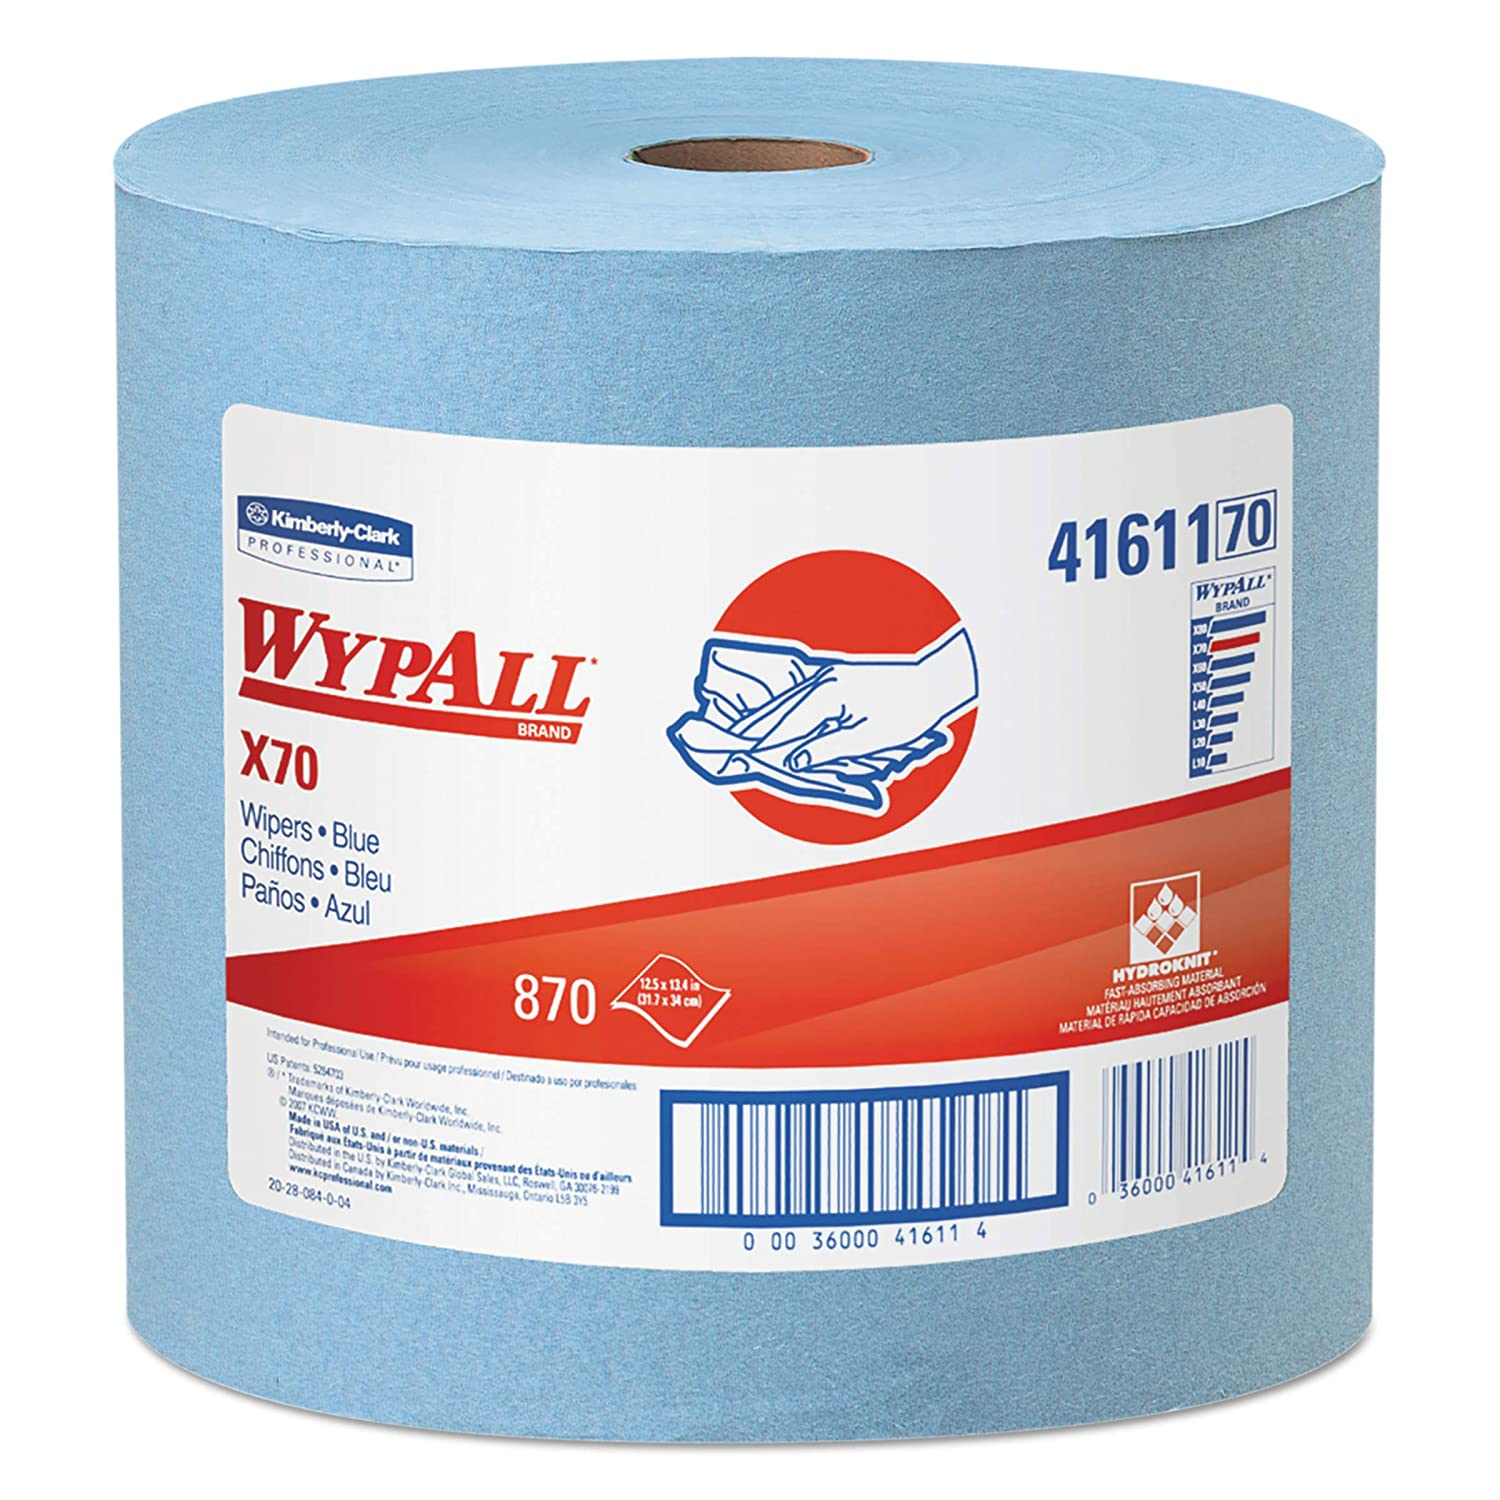 WypAll 41611 X70 Cloths Jumbo Department store Roll 12 x 870 Max 66% OFF Blue 13 1 2 5